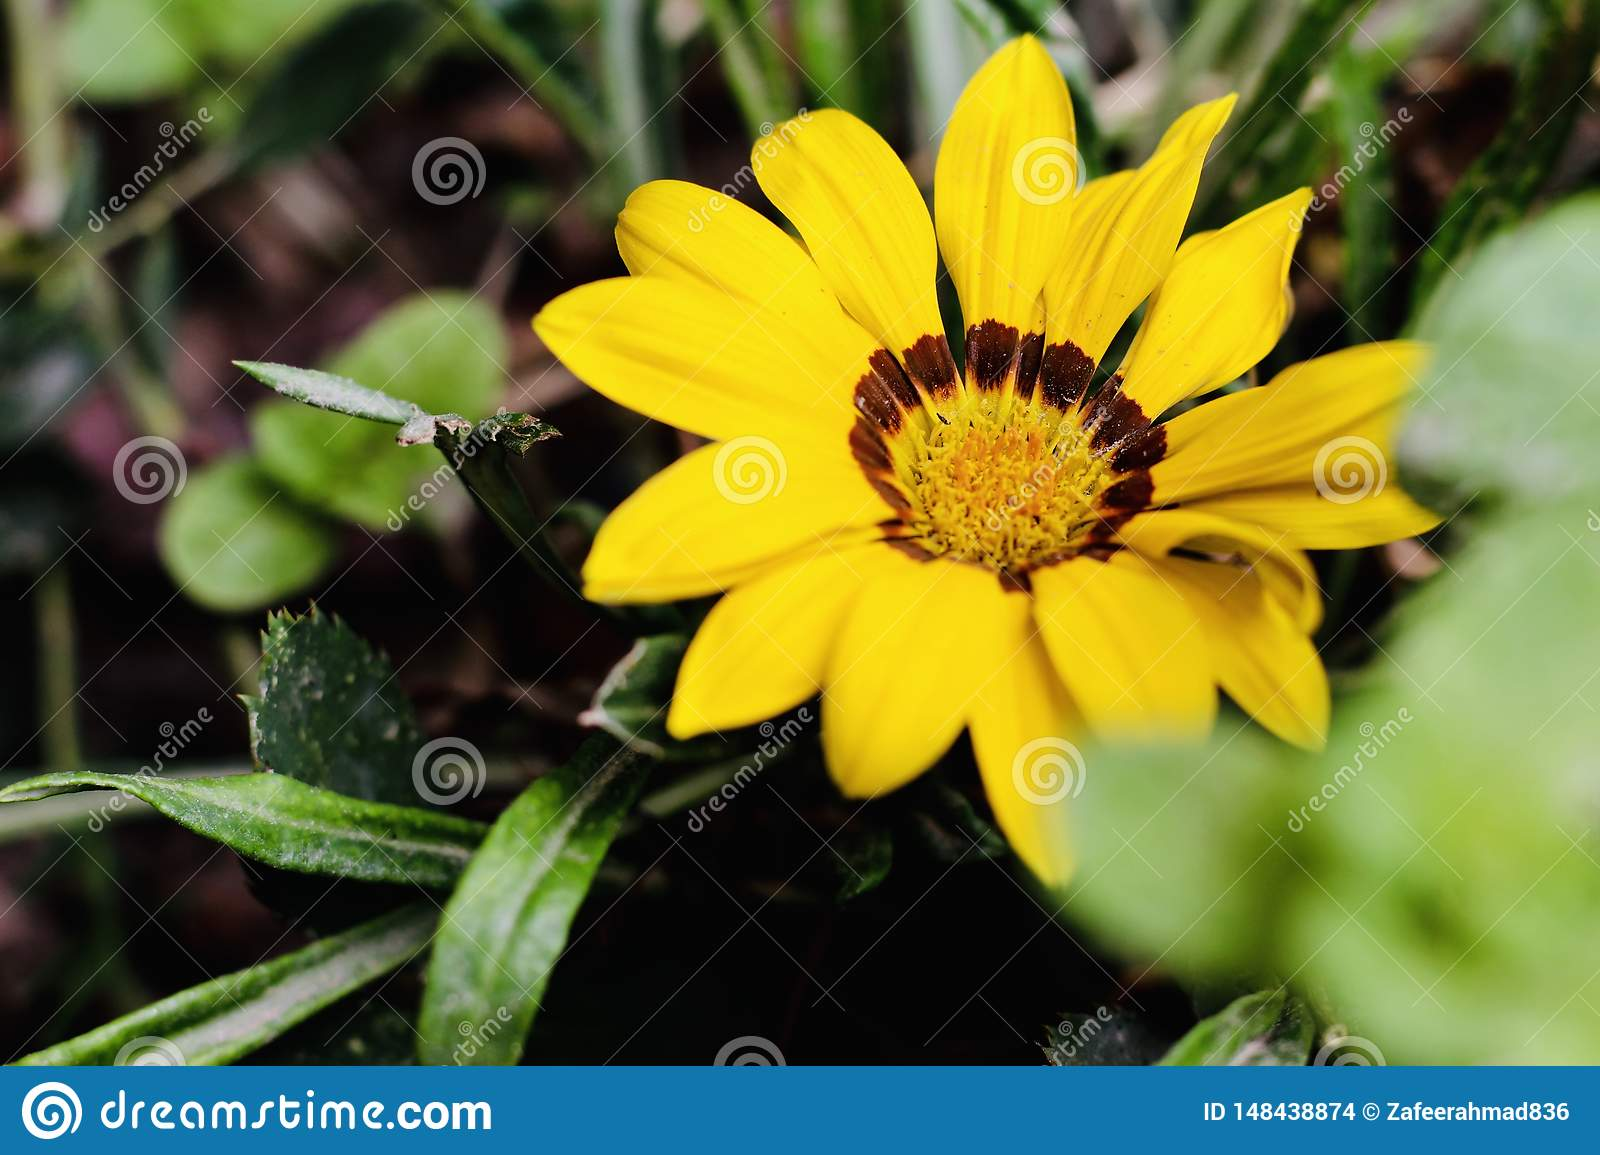 A beautiful sunflower in the morning